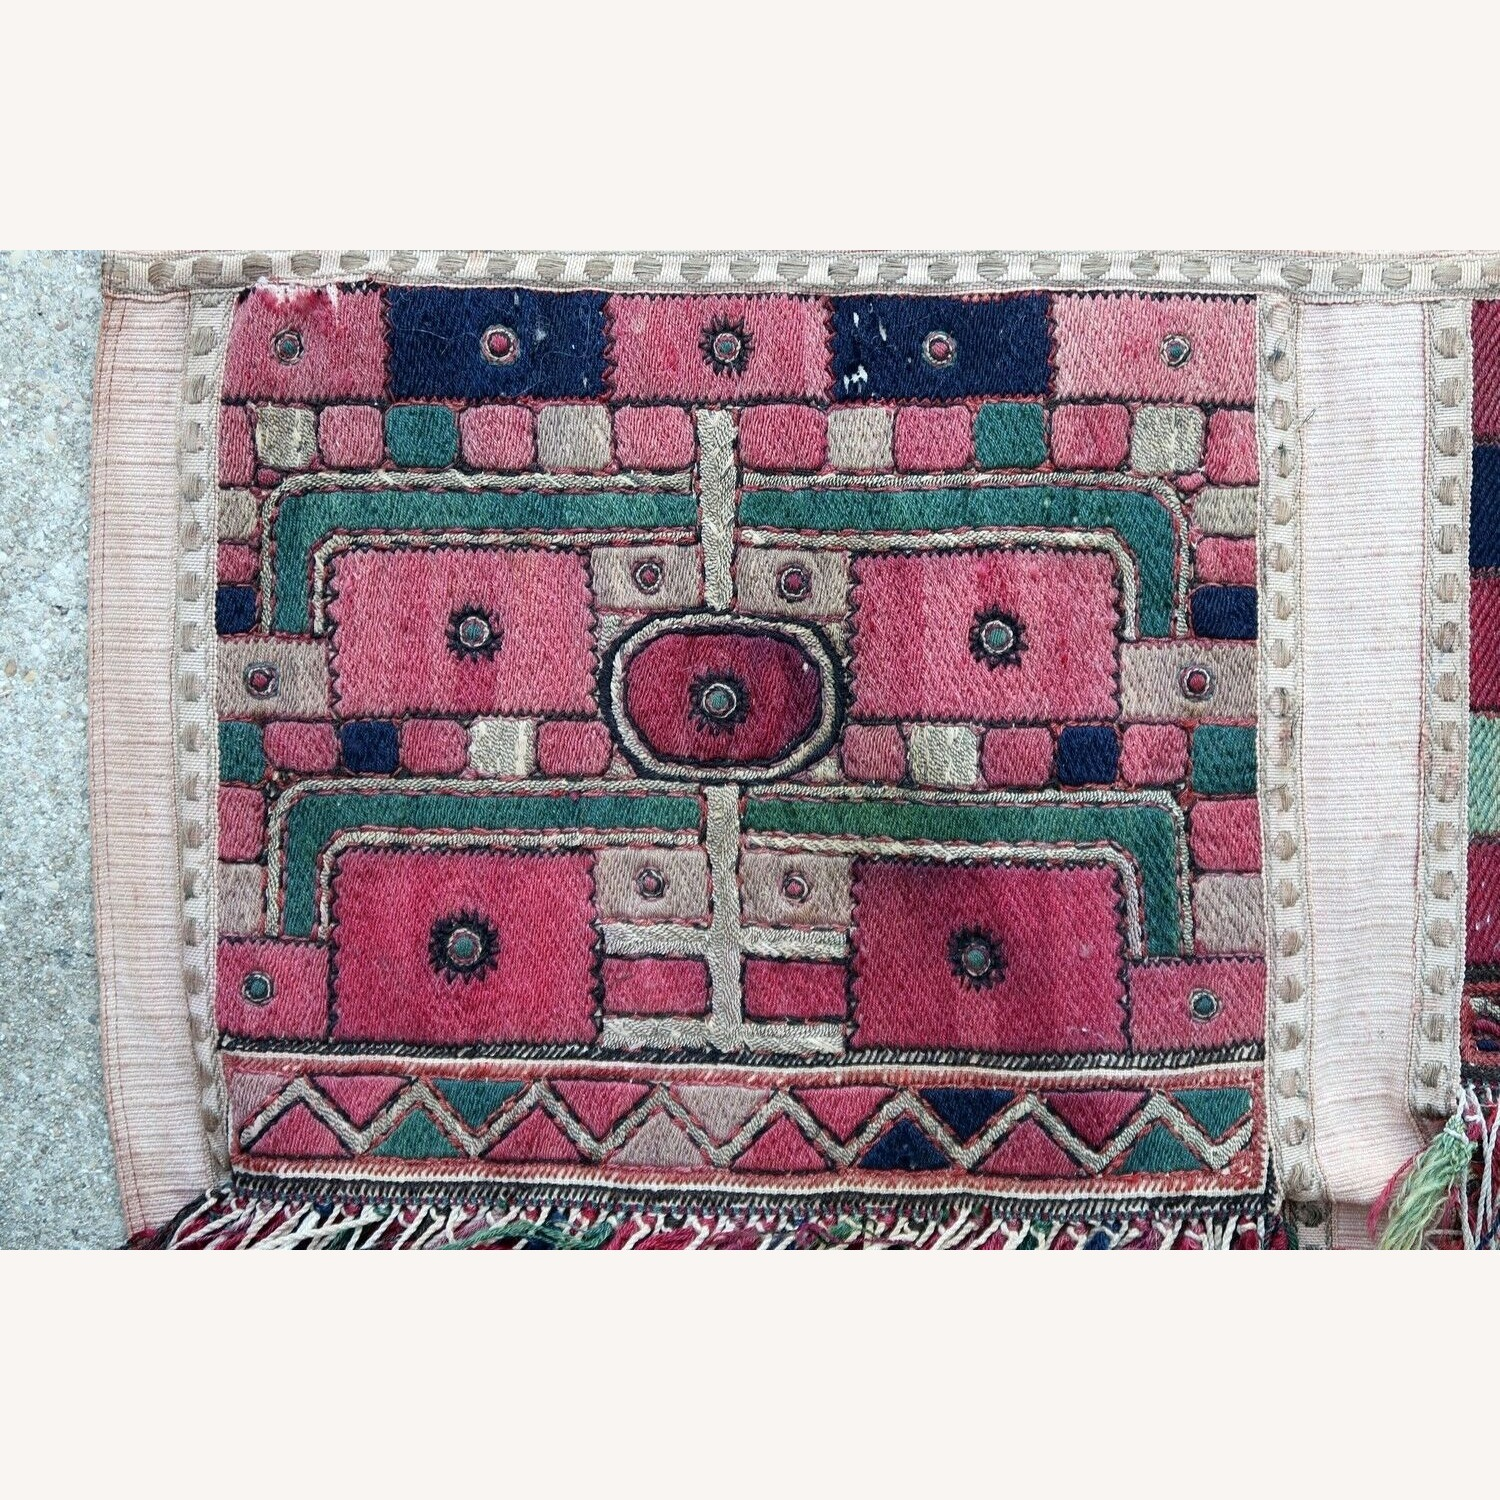 Handmade antique Greek embroidery, 1P87 - image-5